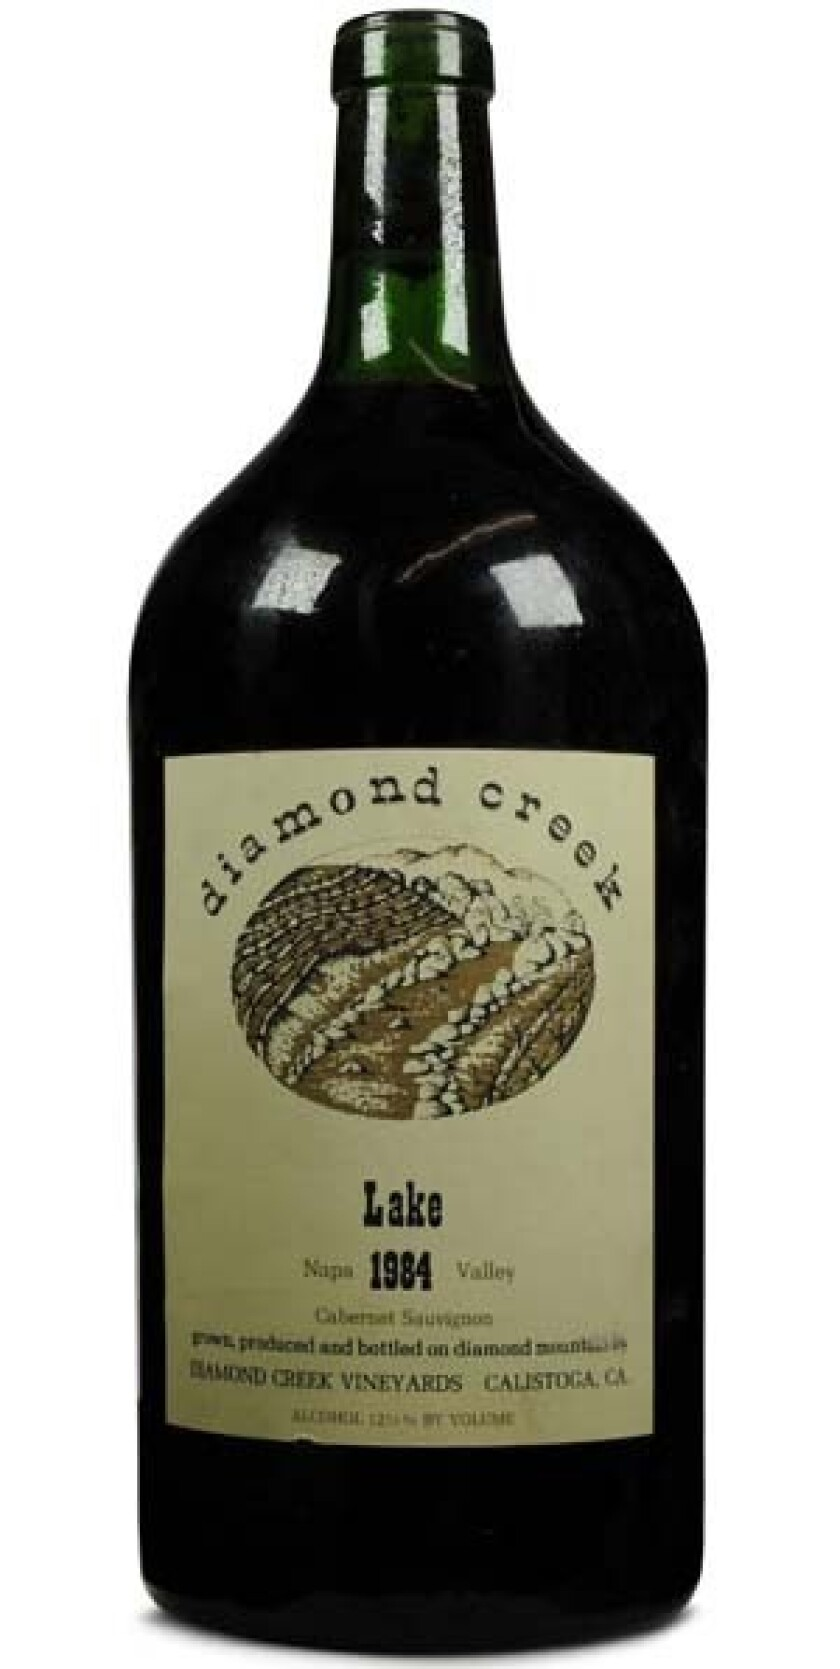 1984 Diamond Creek Lake Cabernet Sauvignon